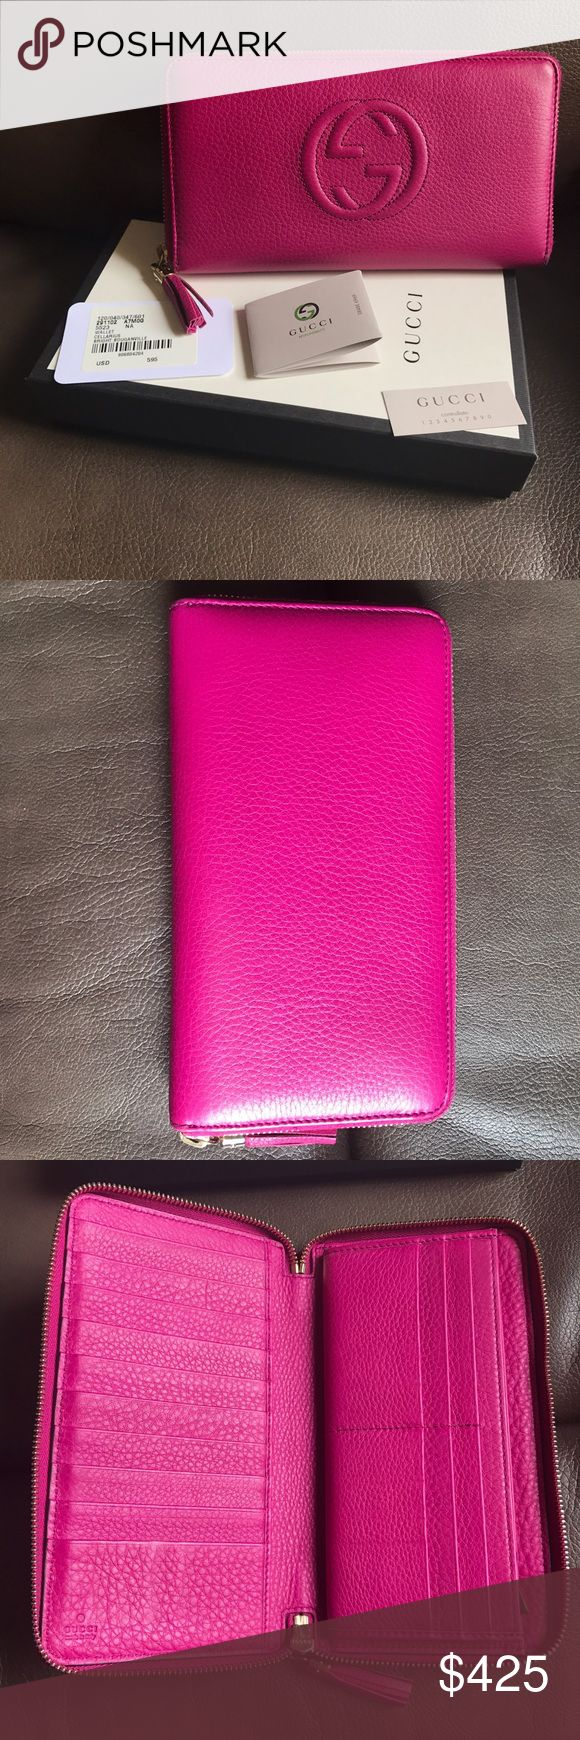 FLASH SALE Authentic XL Soho Wallet Bougainvillea Used several times. In great condition, however, zipper area has light piling. Comes with original packaging. Was originally purchased last year at Gucci Beverly Center in Los Angeles, CA. Note this is the larger version that allows you to easily access all your cards. The standard one doesn't open up like this. Goes for $580 + tax. NO TRADES! Feel free to make an offer Gucci Bags Wallets